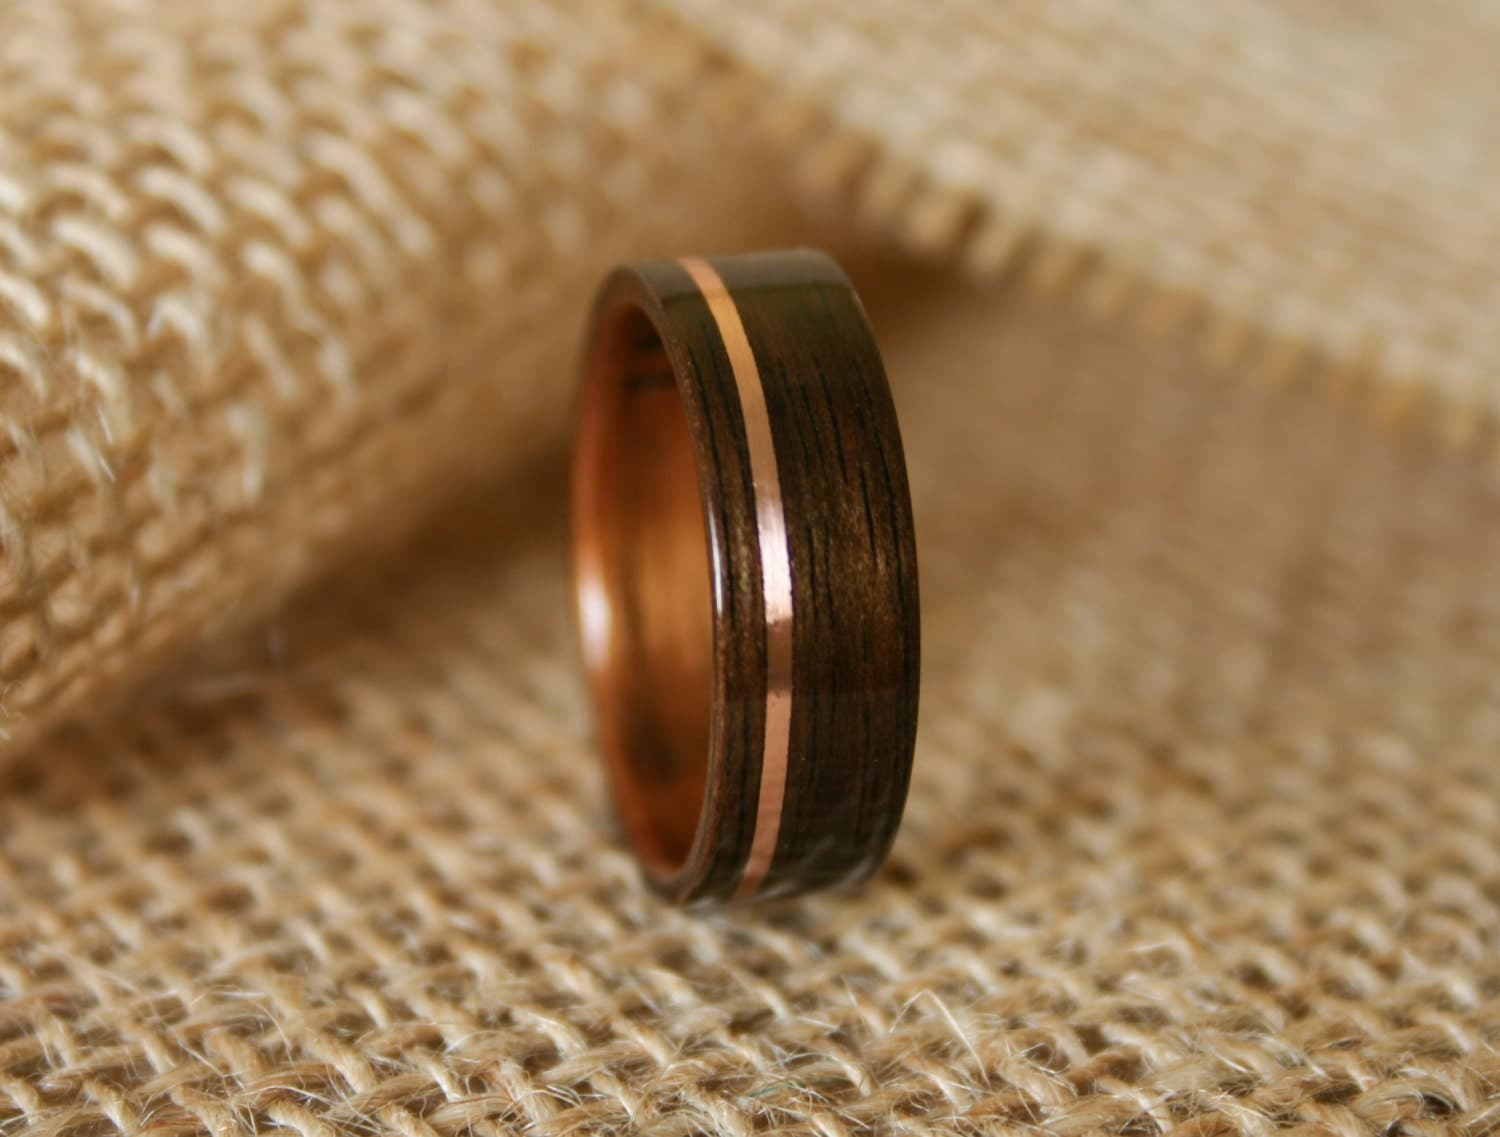 mens wood ring mens wedding rings wood Men s Wooden Wedding Band with 14k Rose Gold Inlay in Macassar Ebony Wood with Koa Wood Lining Hand Crafted Wooden Ring